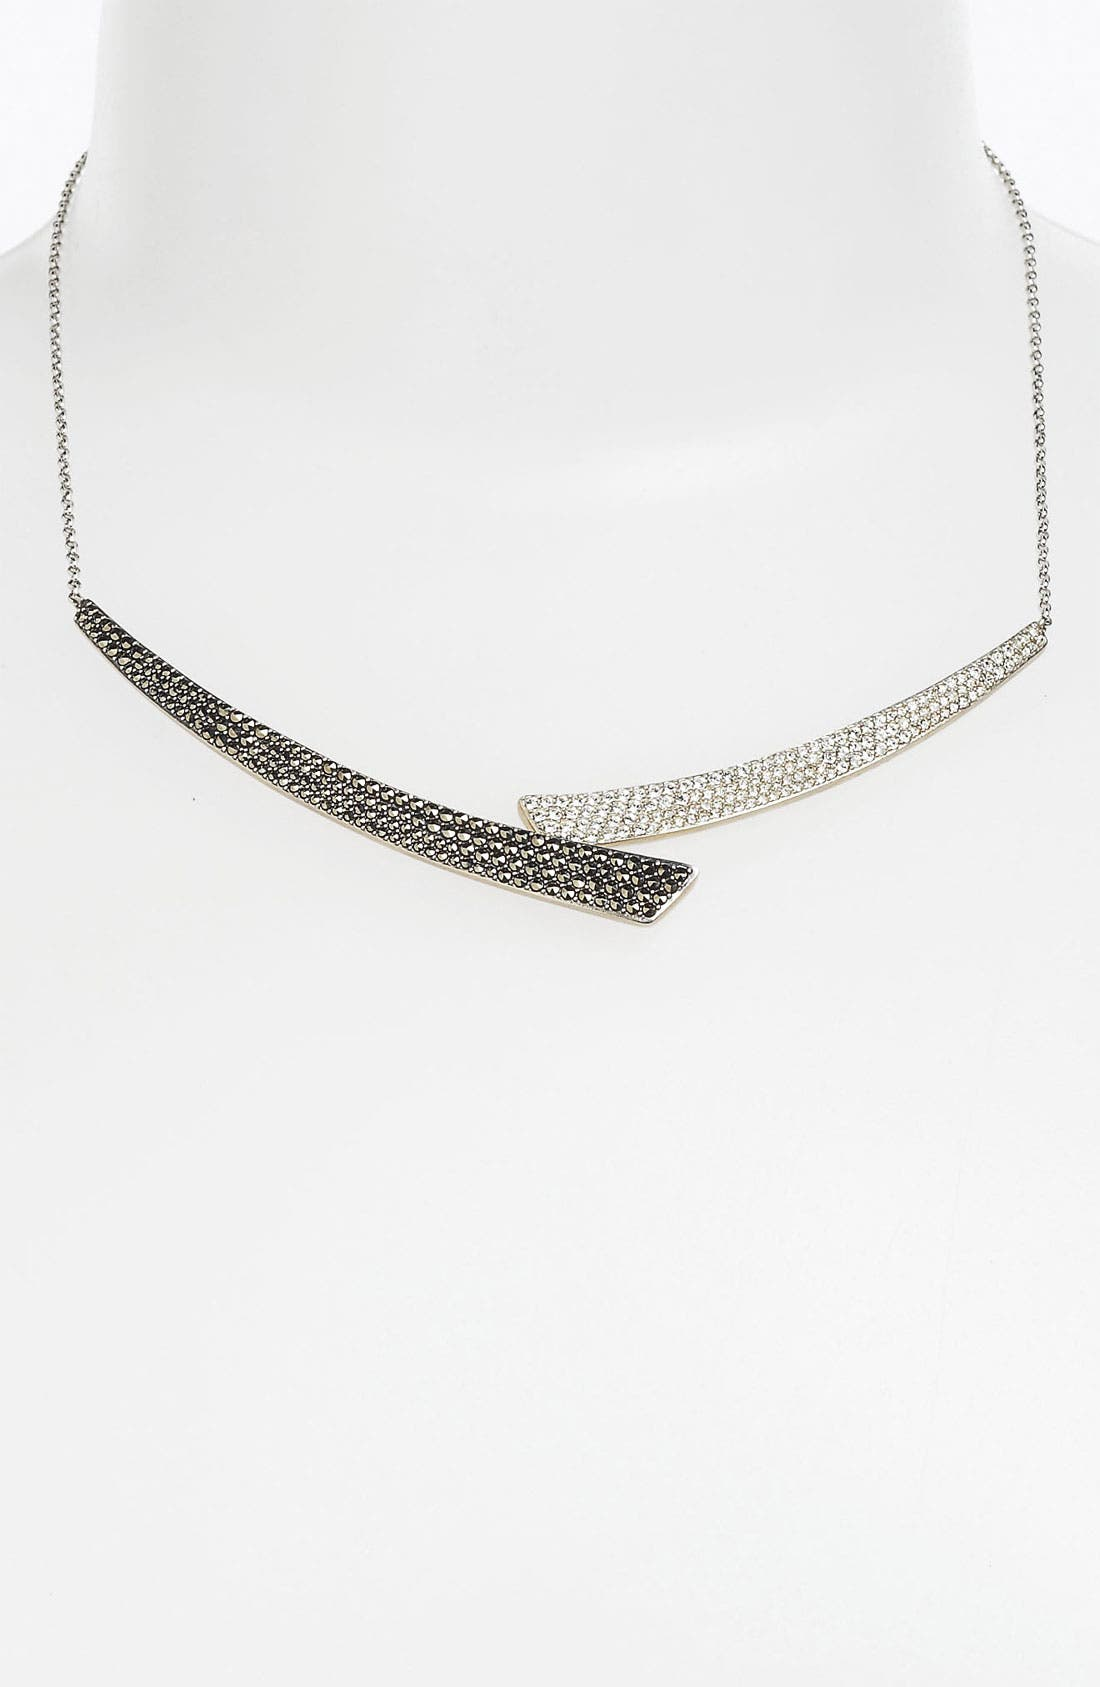 Main Image - Judith Jack 'Crystal Glitz' Collar Necklace